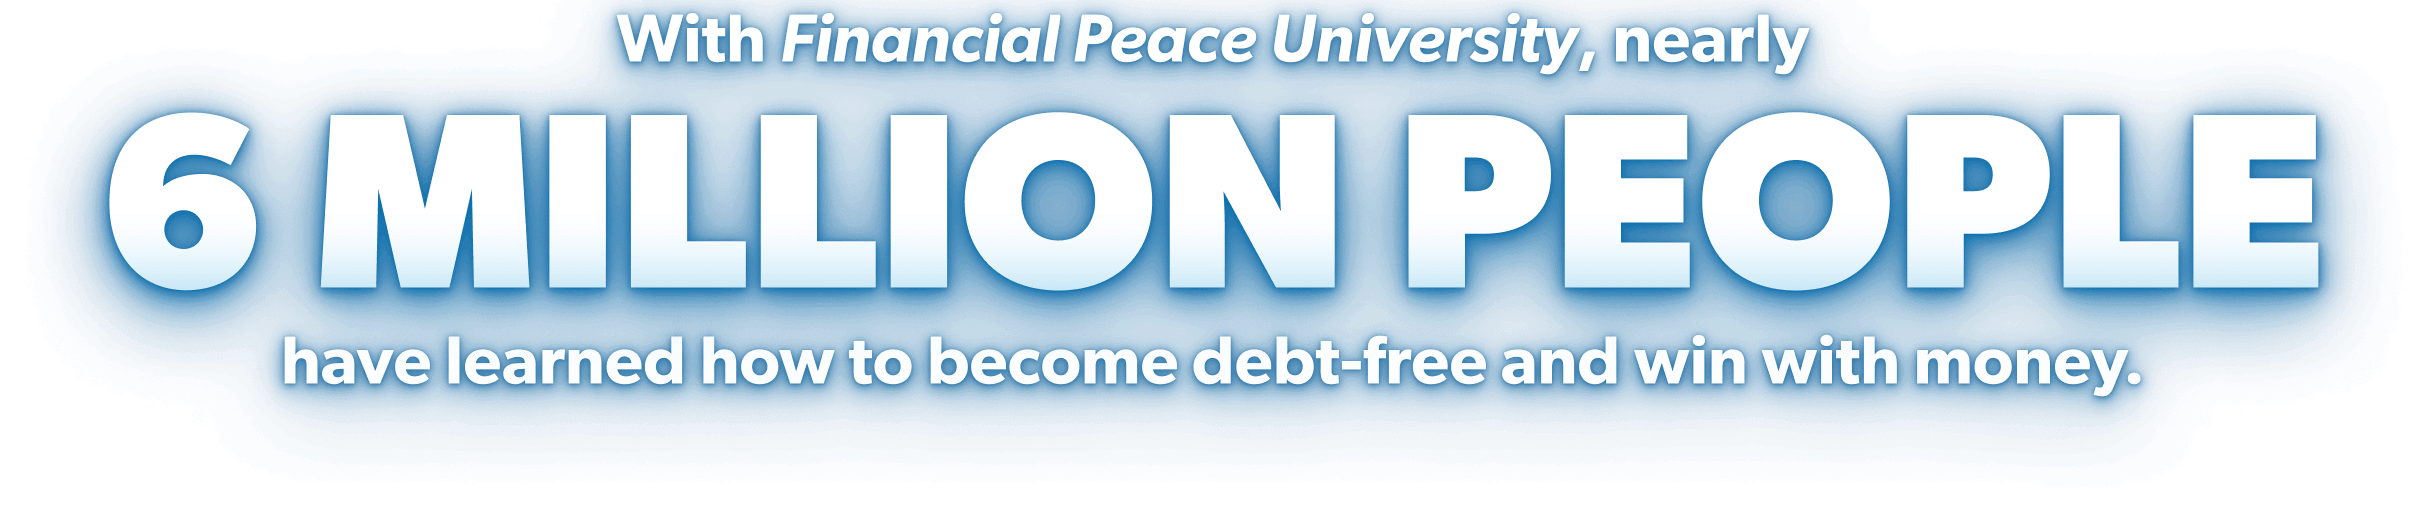 With Financial Peace University, nearly six million people have become debt-free and are winning with money.